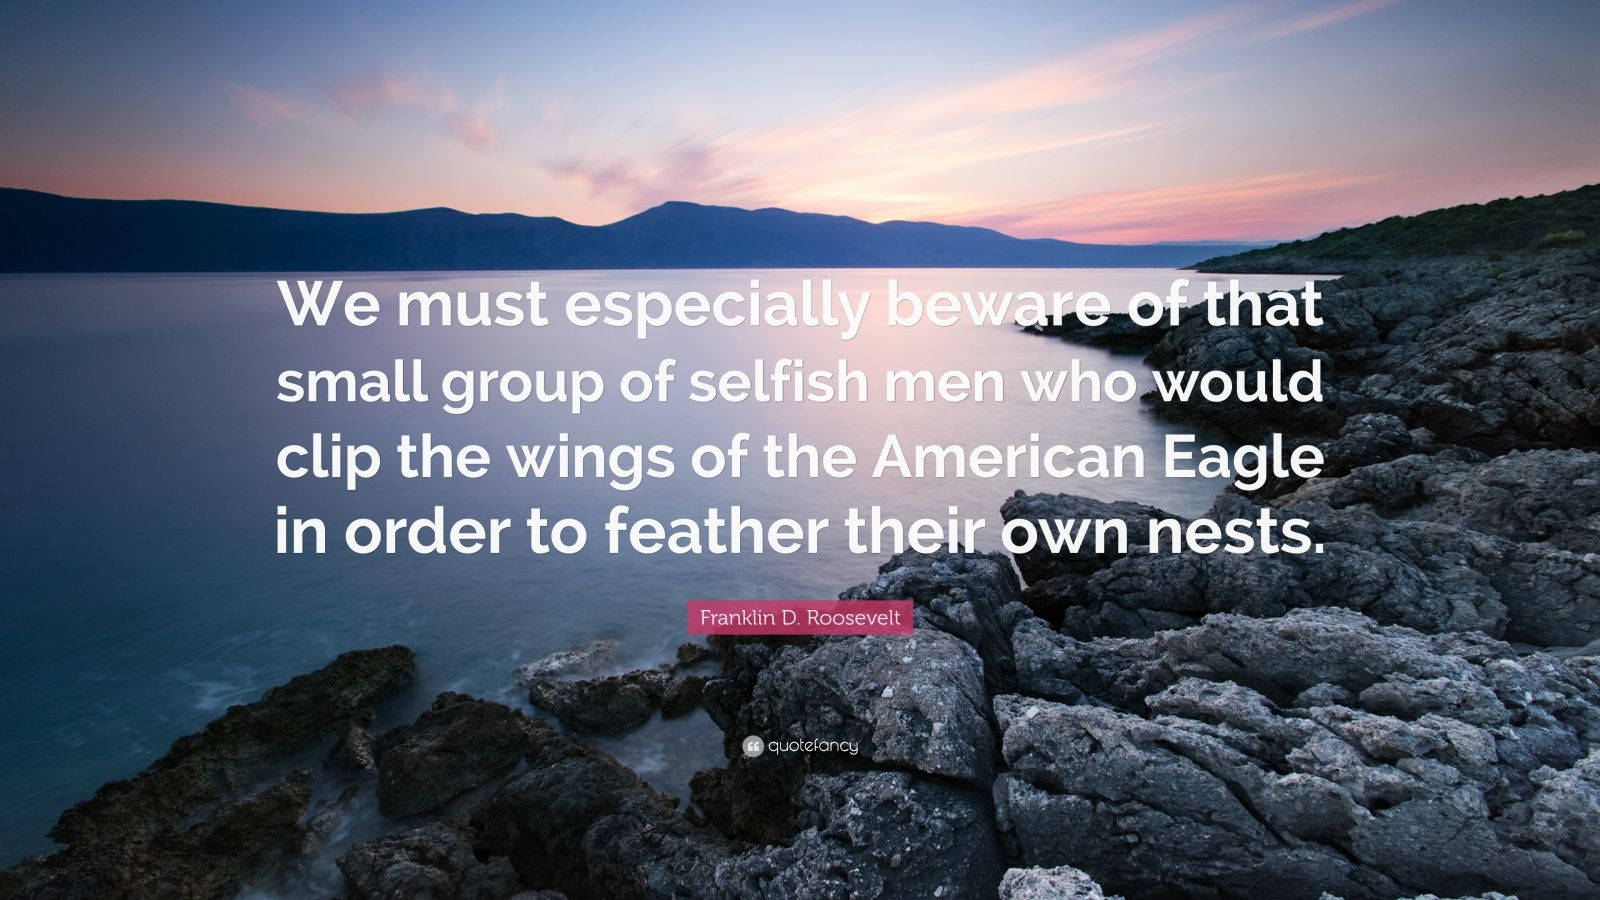 """Franklin D. Roosevelt Quote: """"We must especially beware of that small group of selfish men who would clip the wings of the American Eagle in order to feather their own nests."""""""